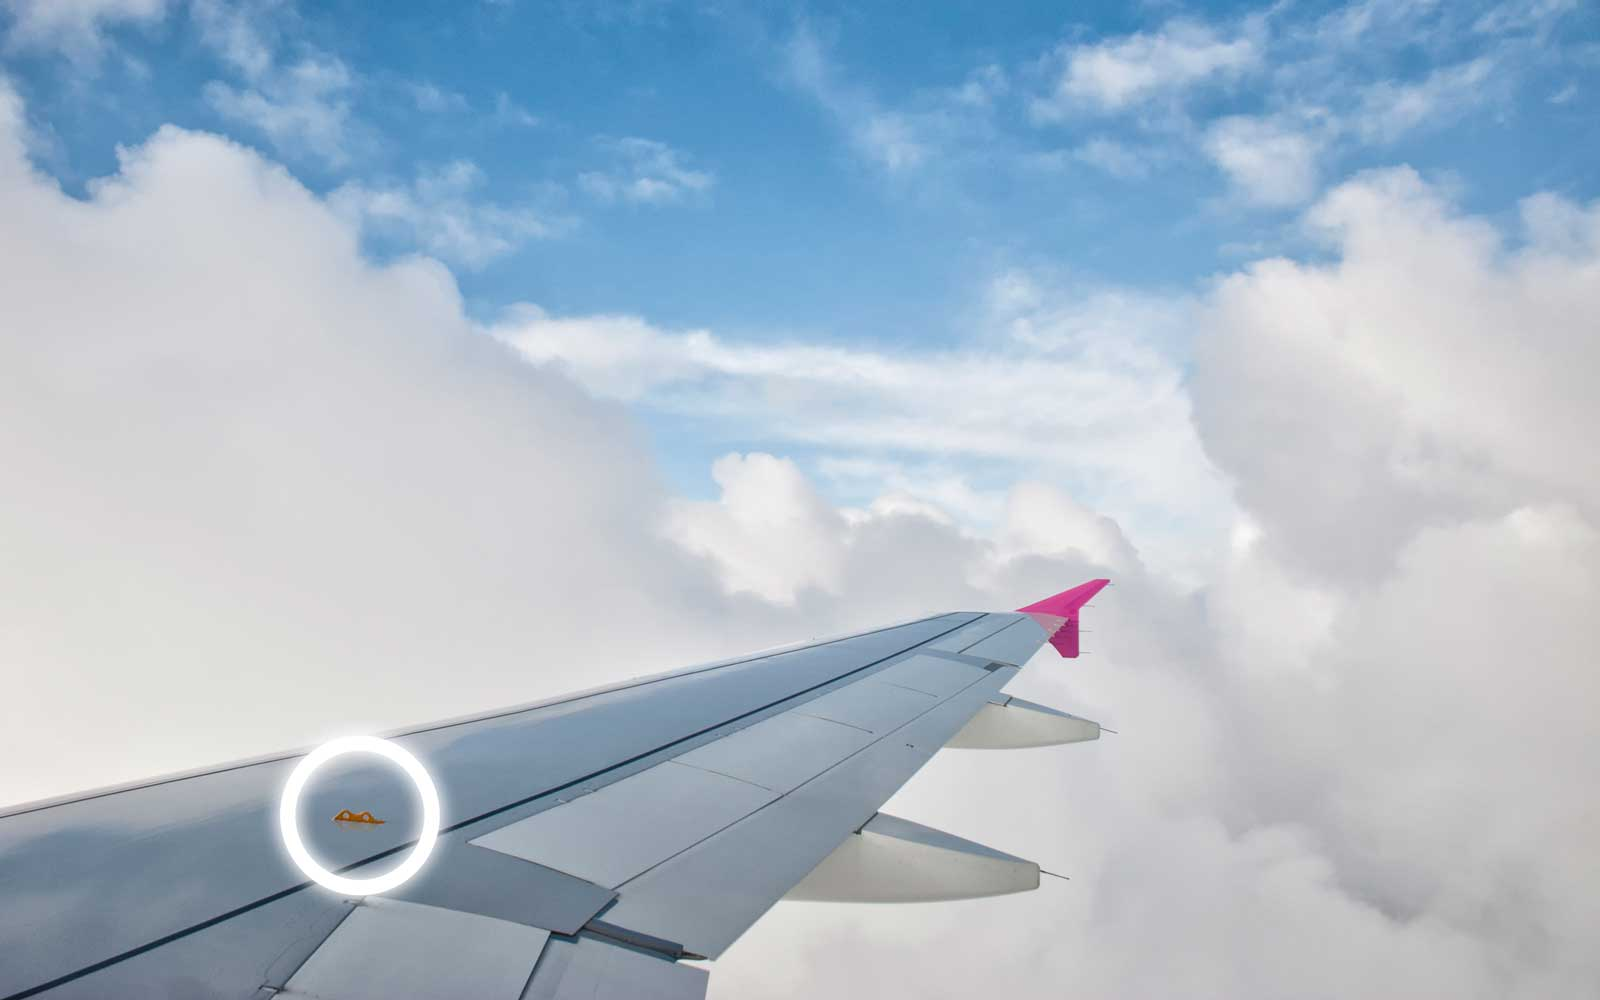 Wing above the clouds. clouds wing plane Boeing sky height summer relax puffy clouds.